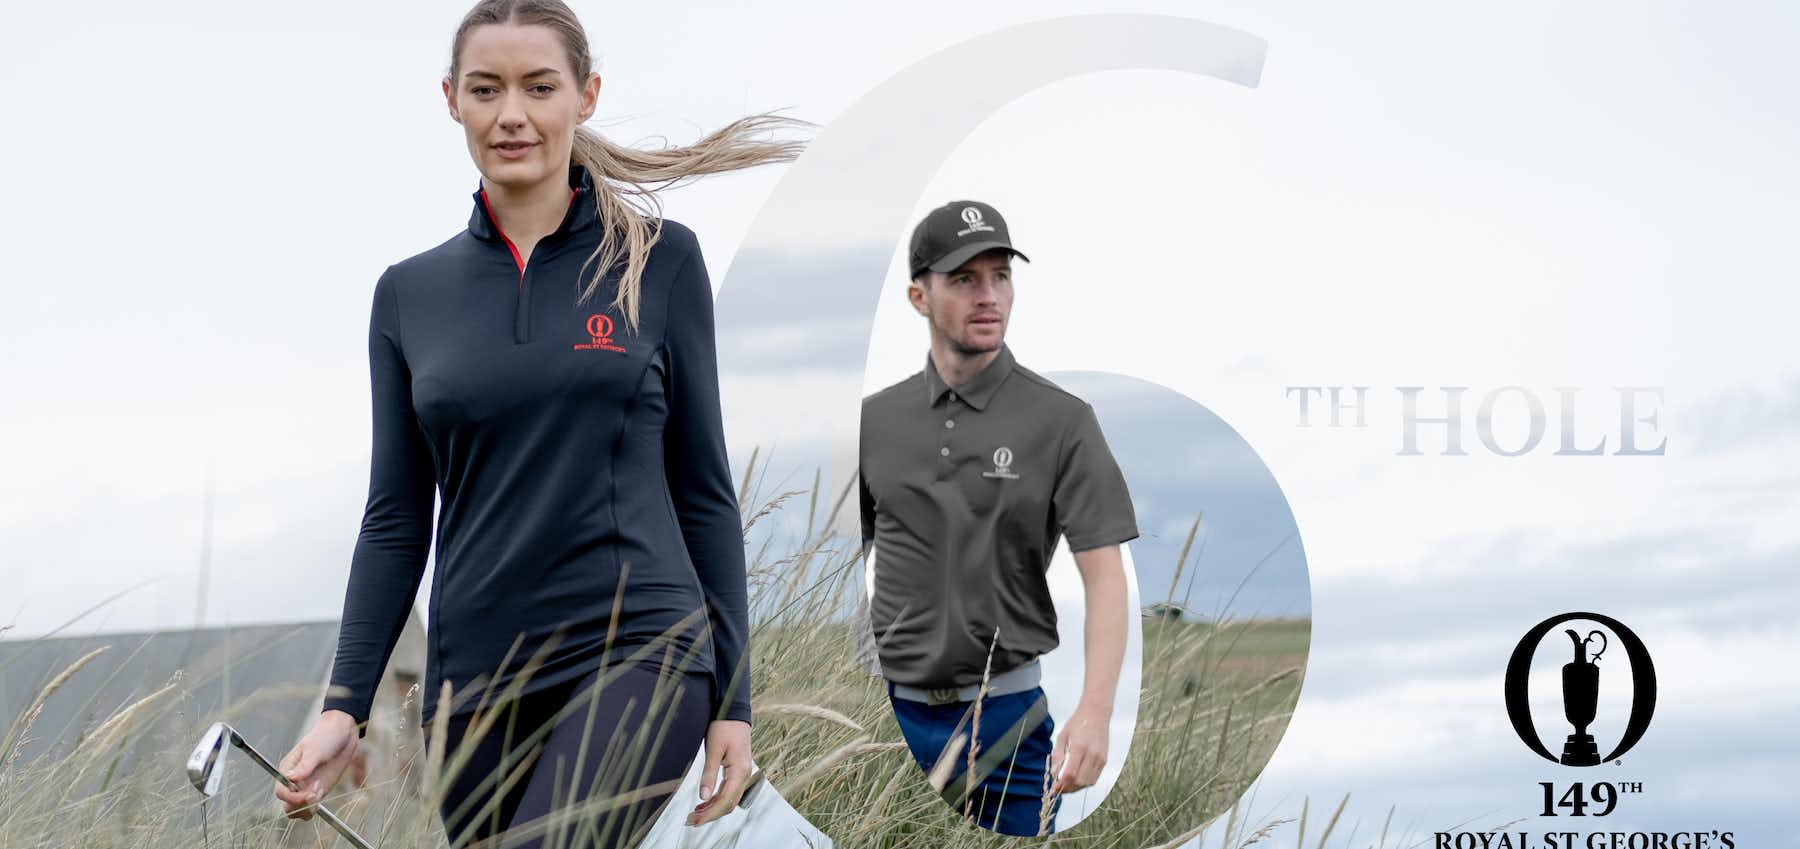 The Maiden Collection: Celebrating The Open's heritage at Royal St George's